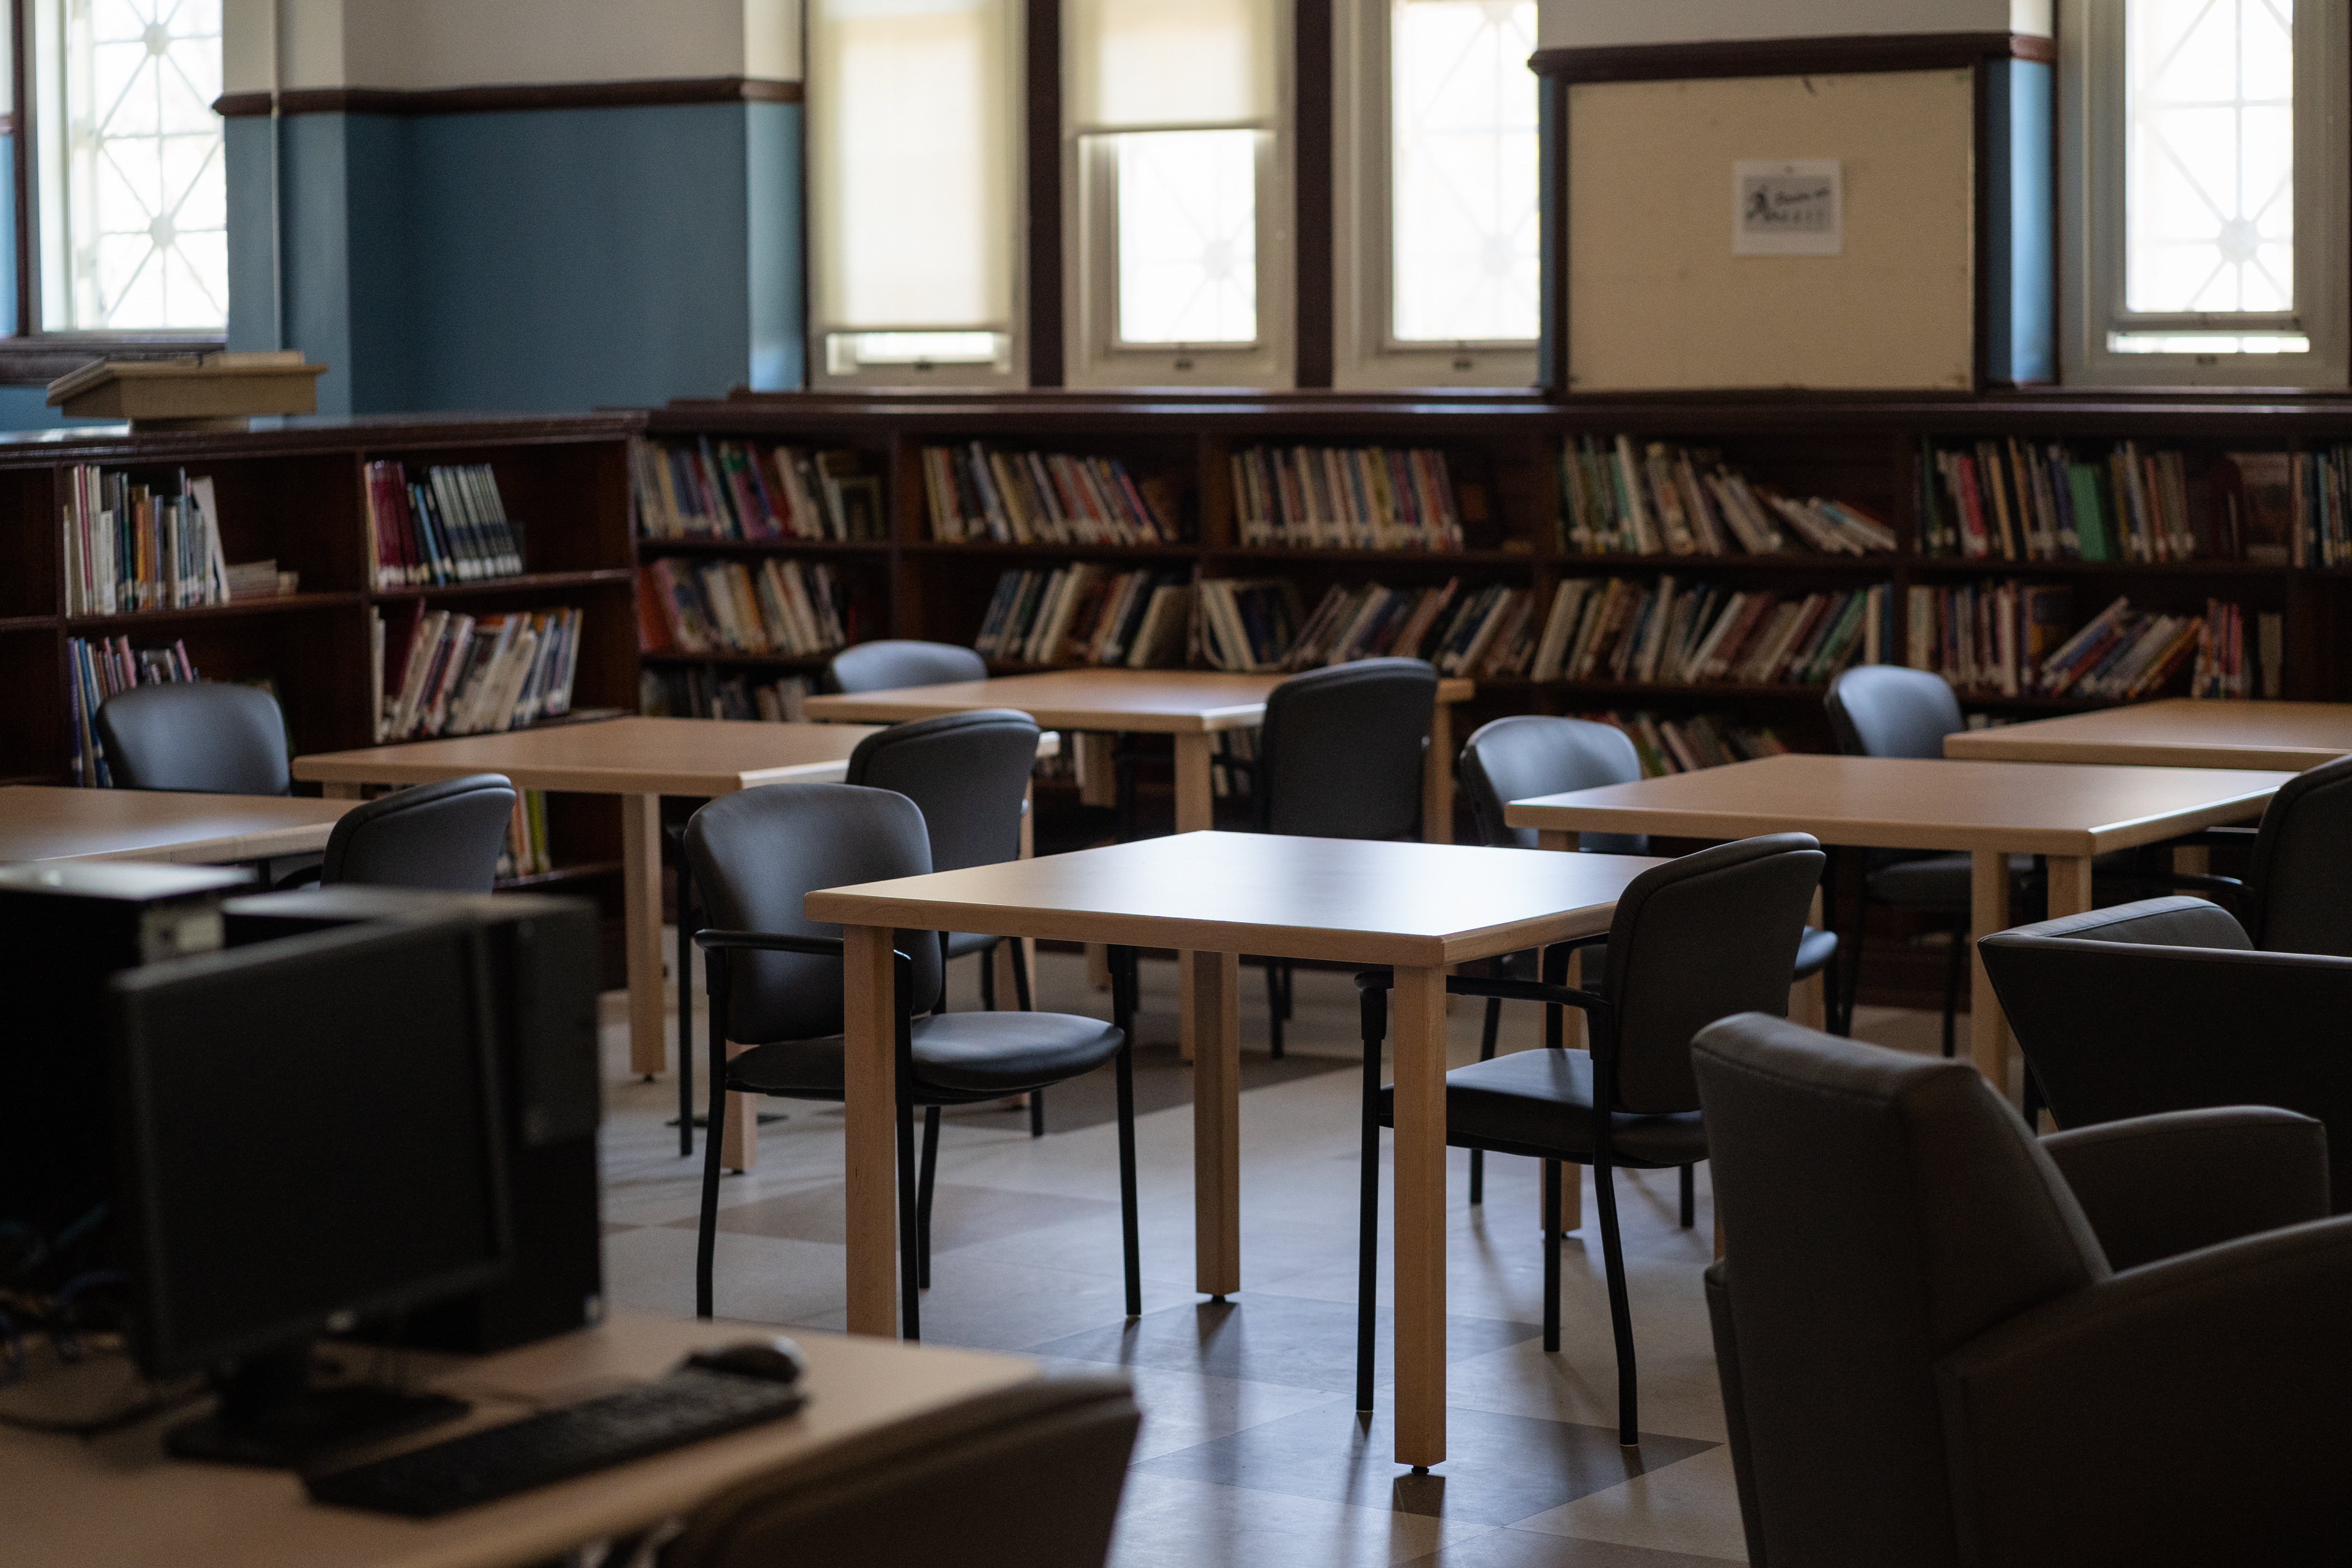 Student desks sit in an empty room at Senn High School, with bookshelves and windows in the background.